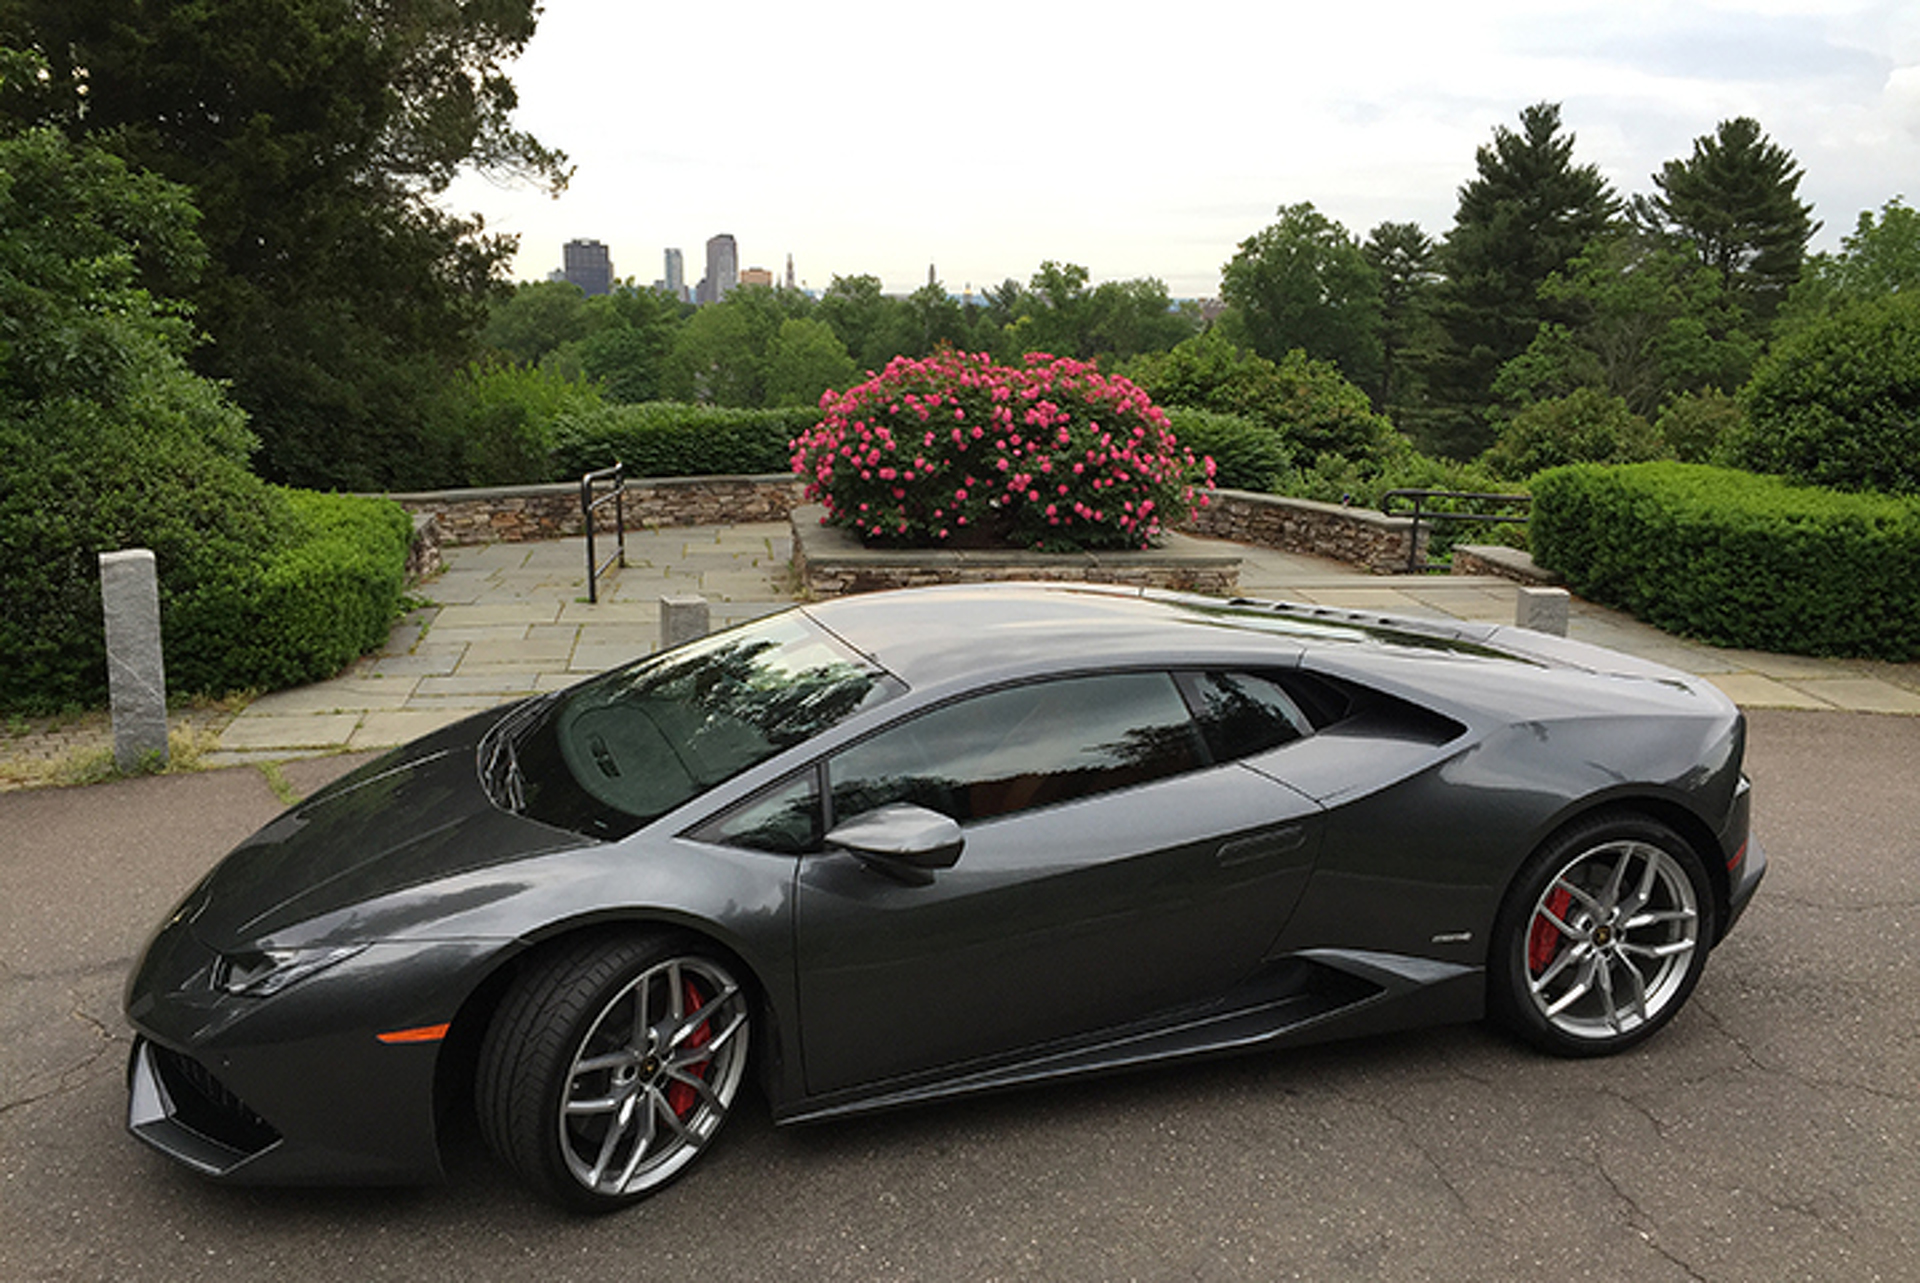 2015-lamborghini-huracan-truly-an-amazing-machine-review Fabulous Lamborghini Huracan Need for Speed 2015 Cars Trend